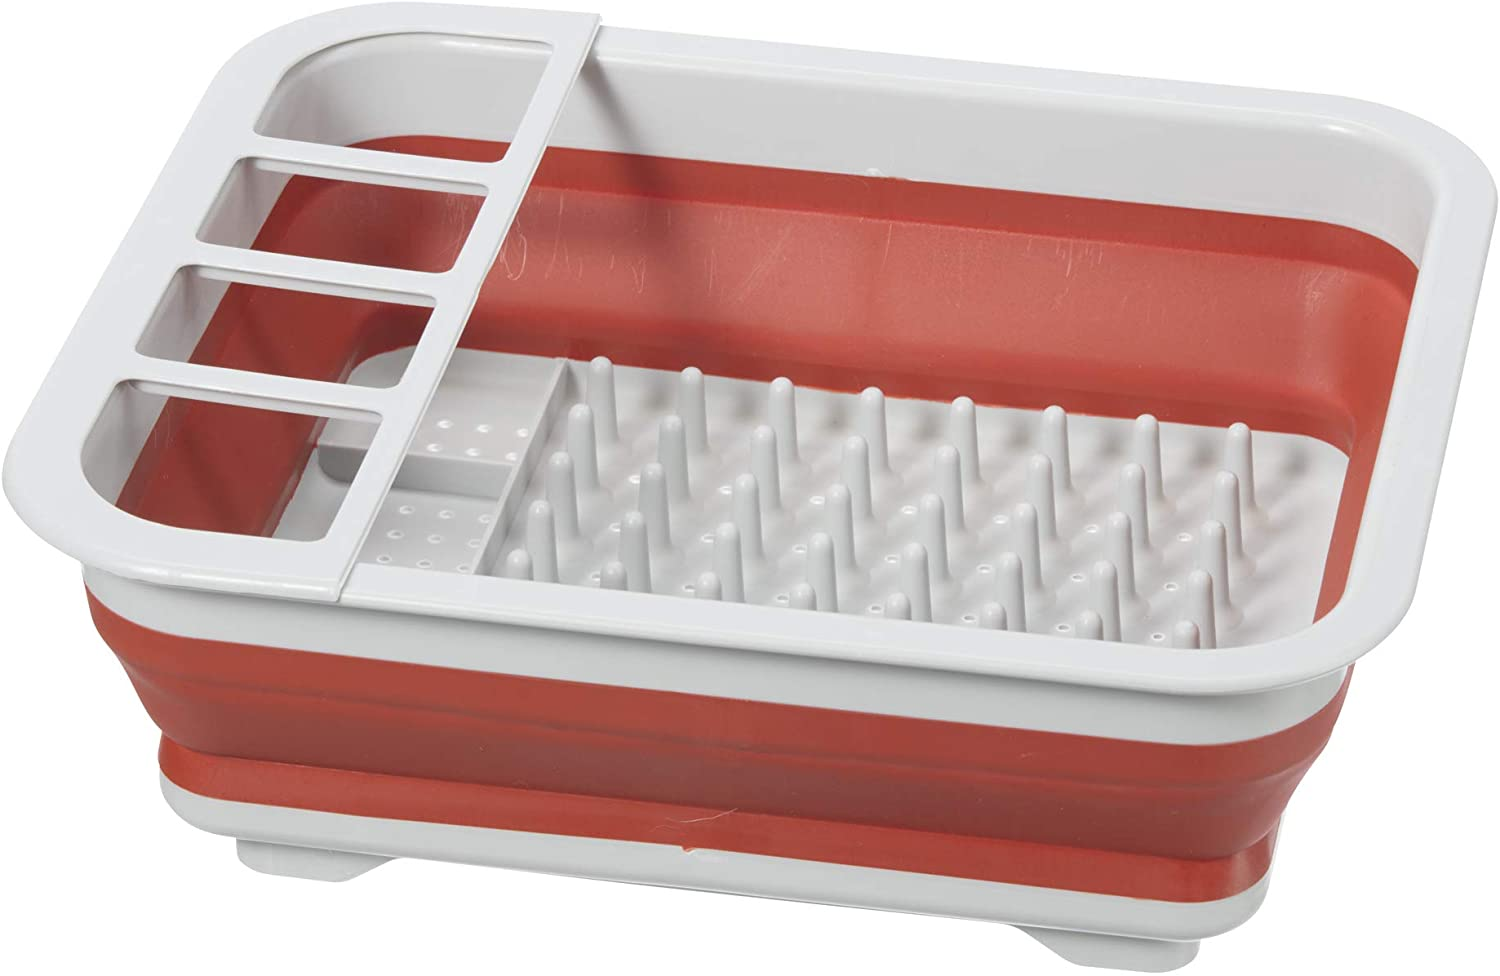 OGGI Collapsible Dish Drying SALENEW very low-pricing popular Rack - easy collapse Pop-up for and